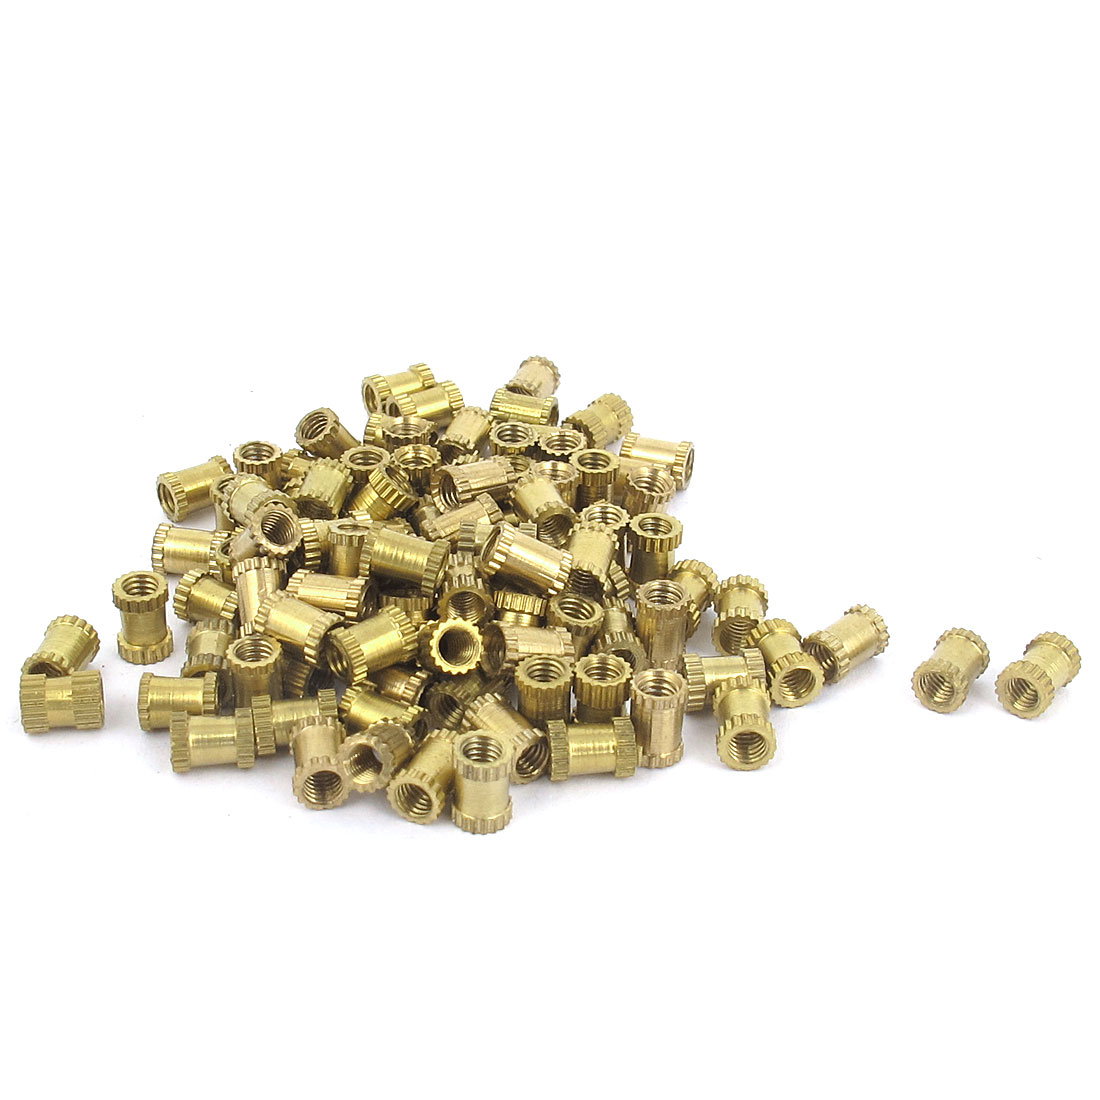 M3x6mm Threaded Round Metal Knurl Thread Insert Nuts Brass Tone 100Pcs